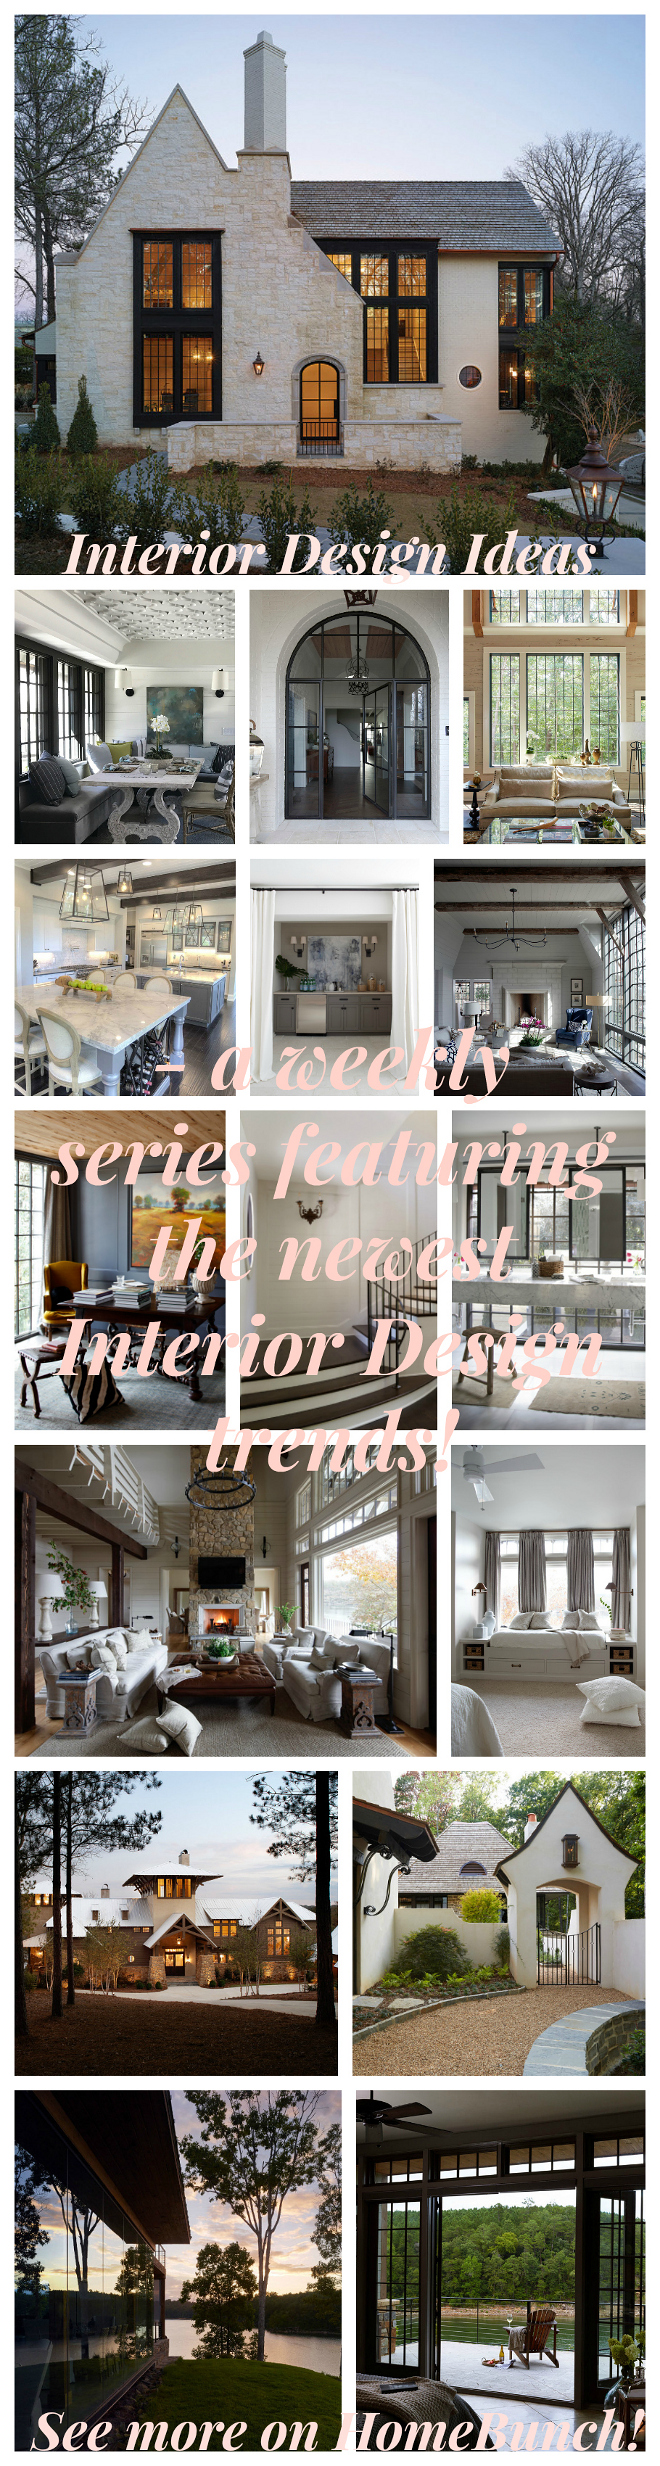 New Interior Design Ideas - a weekly series featuring the newest interior trends! See more on Home Bunch!